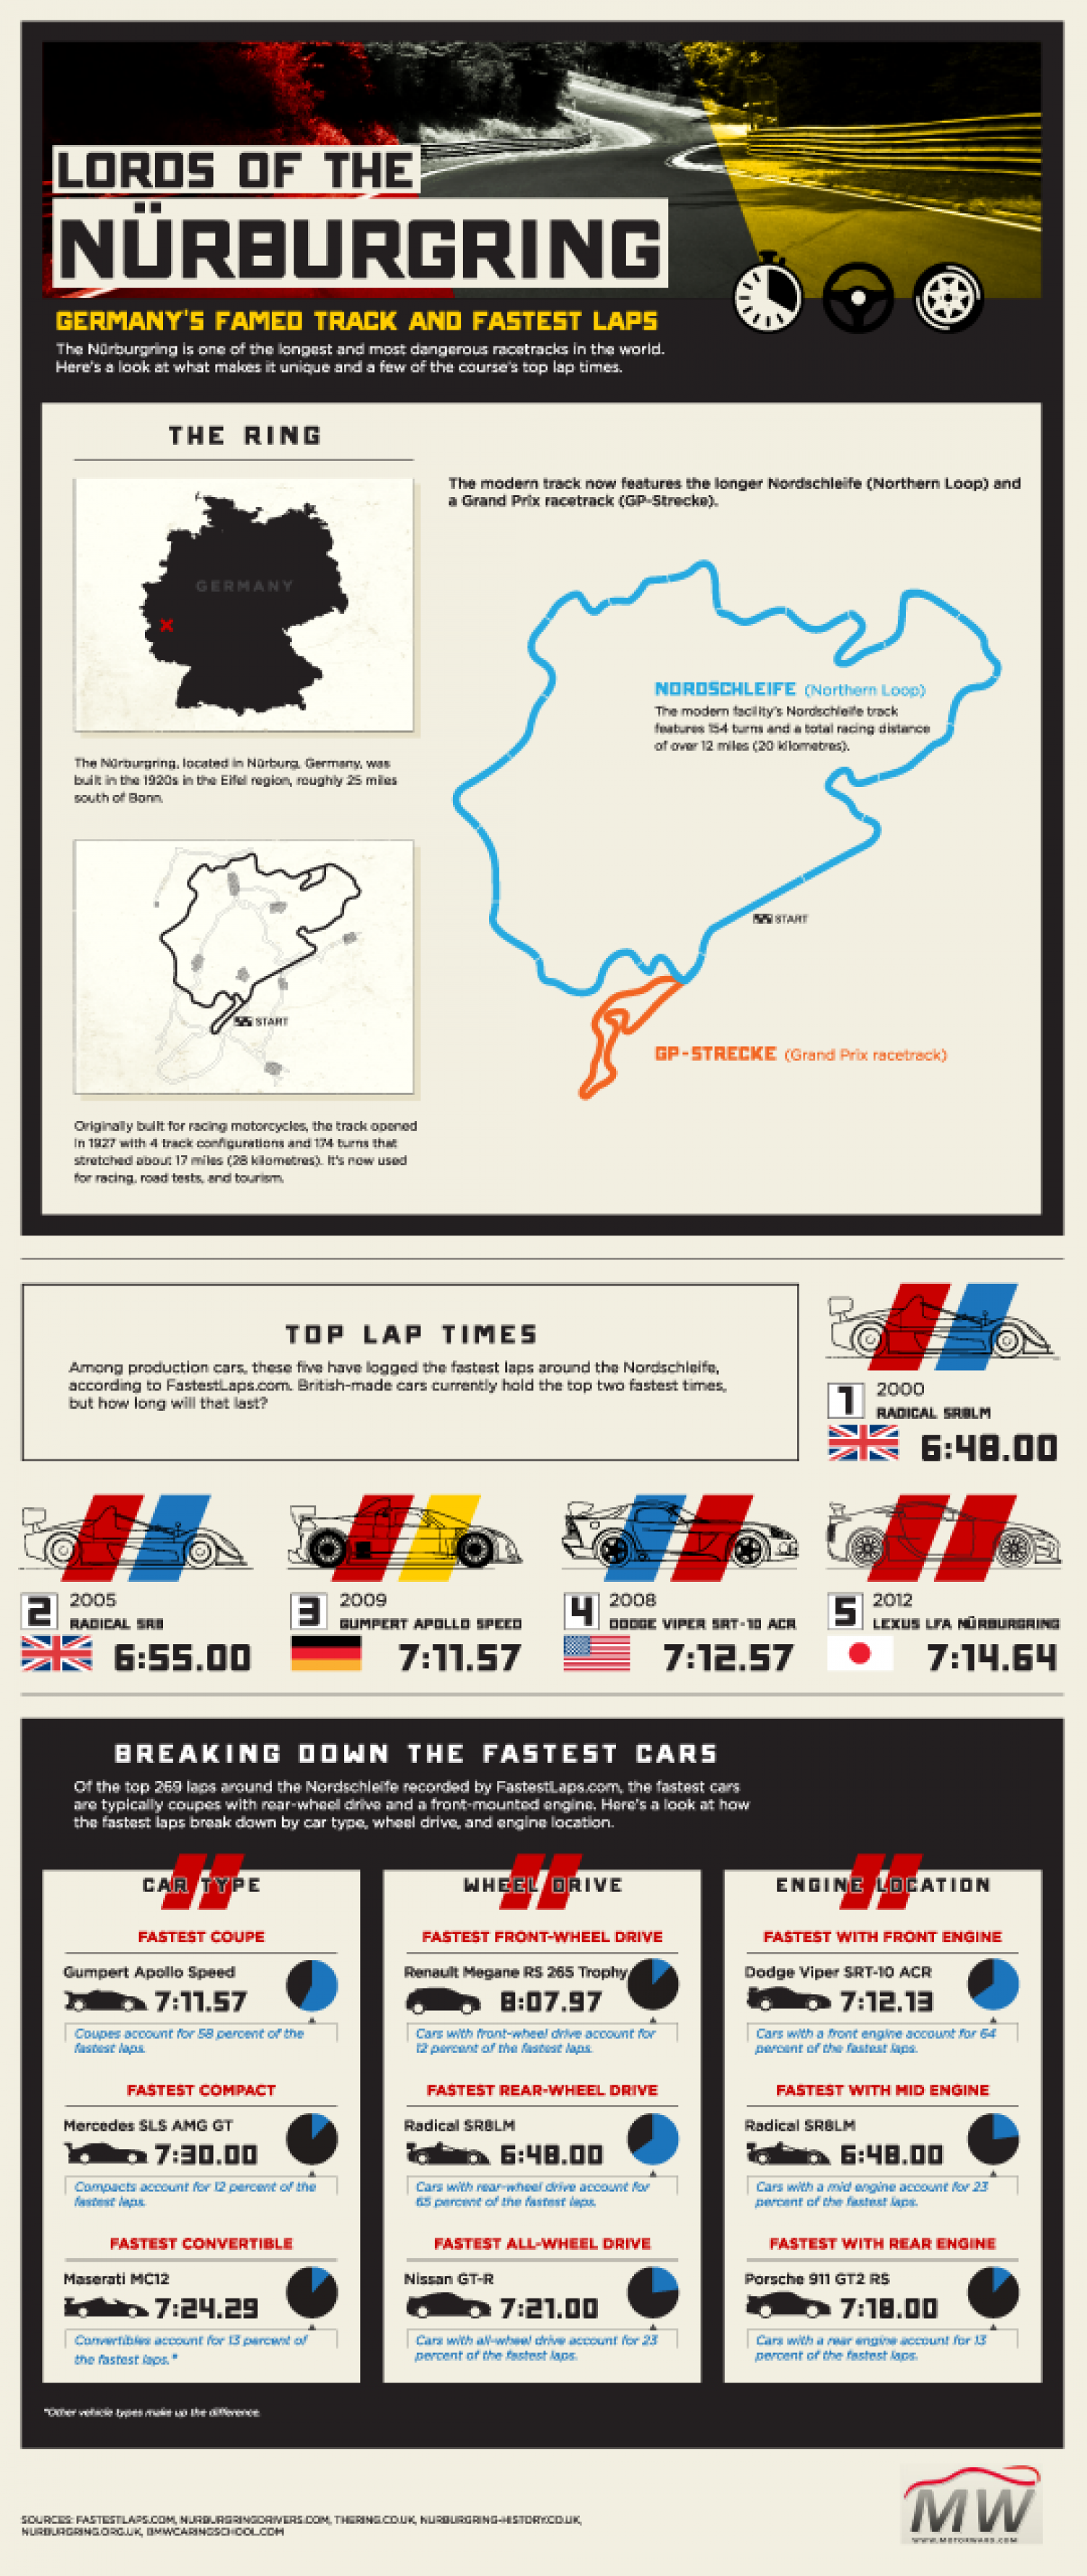 Lords of the Nurburgring Infographic